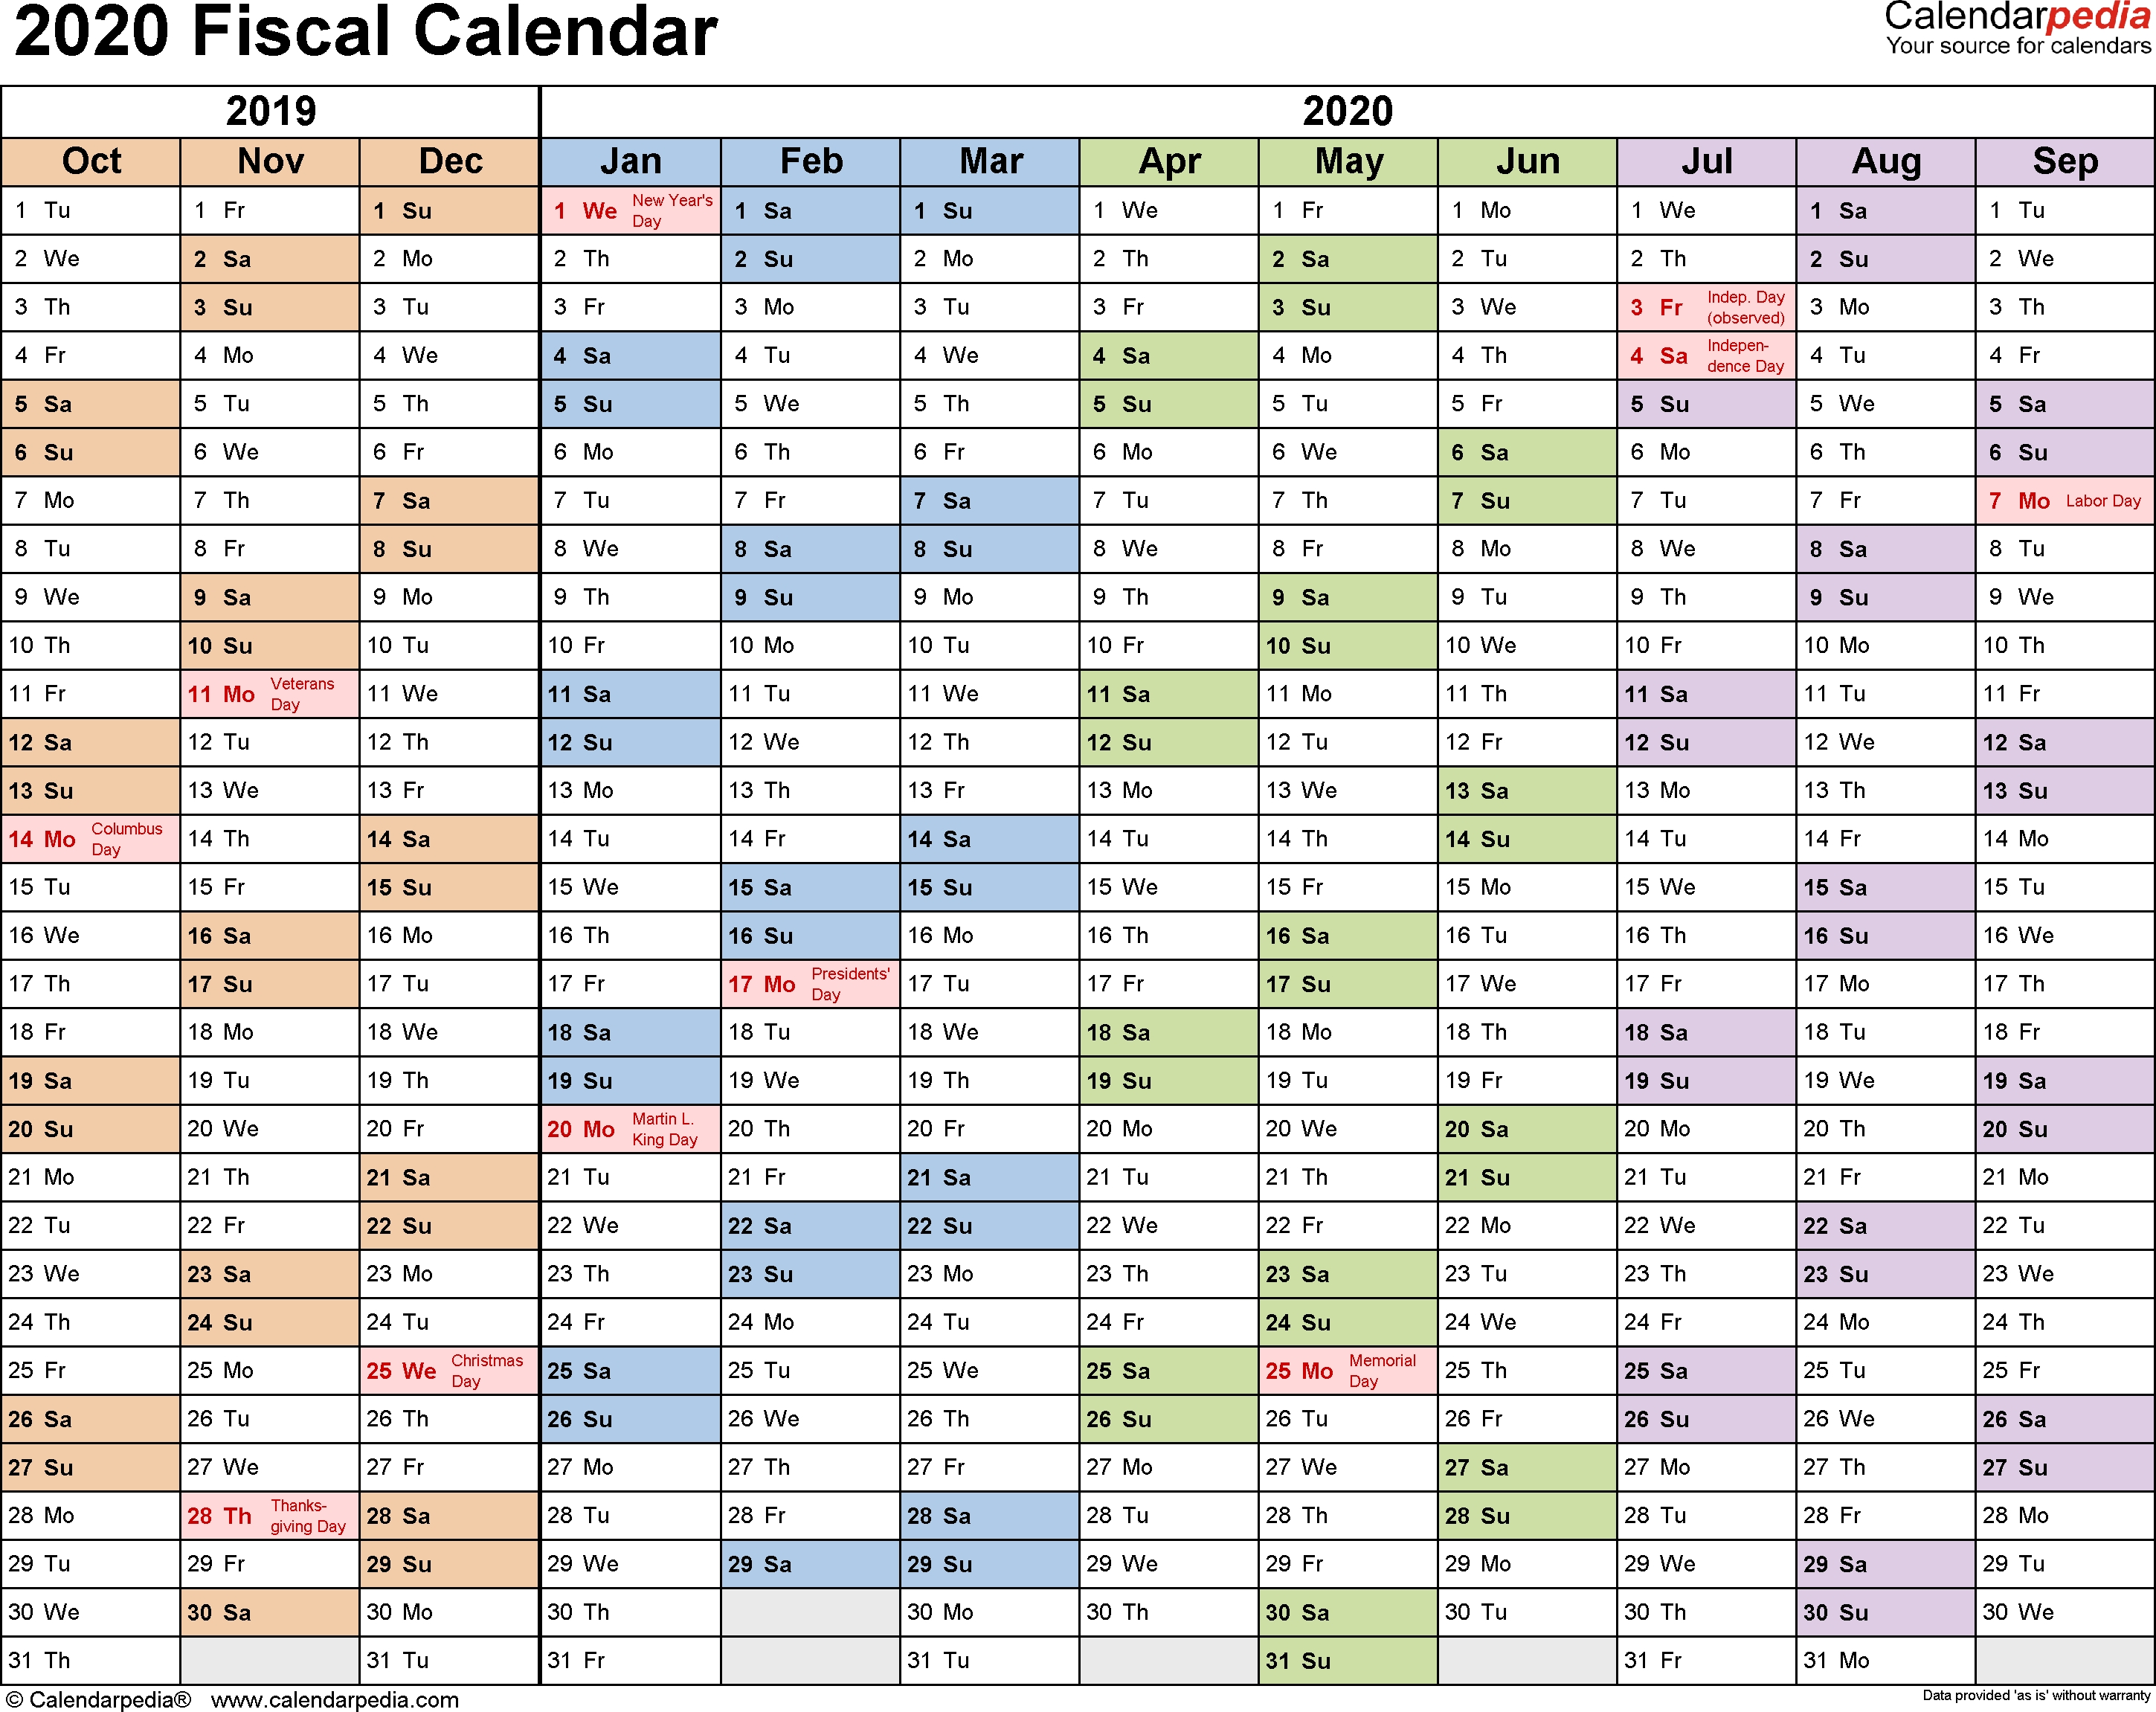 Fiscal Calendars 2020 As Free Printable Word Templates regarding Tax Calender 2019/2020